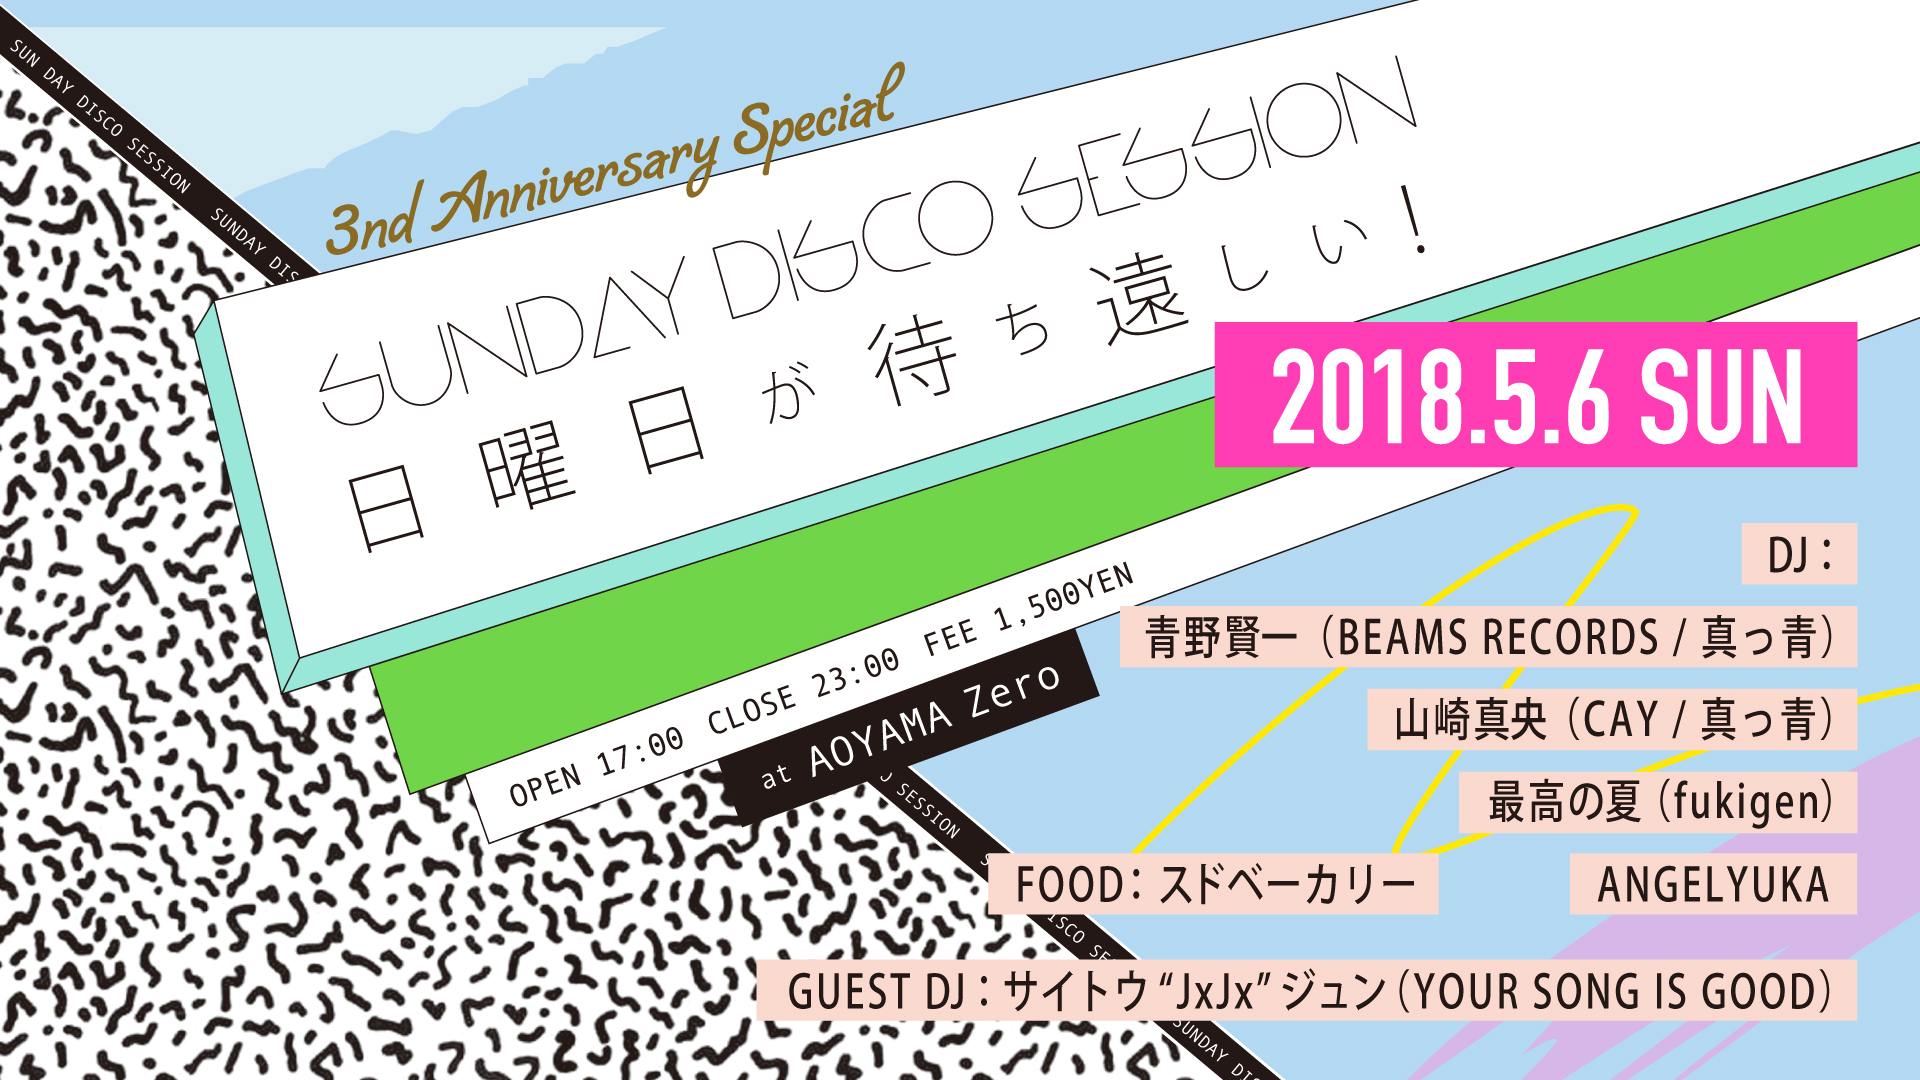 ~3rd Anniversary Special~ SUNDAY DISCO SESSION 日曜日が待ち遠しい!